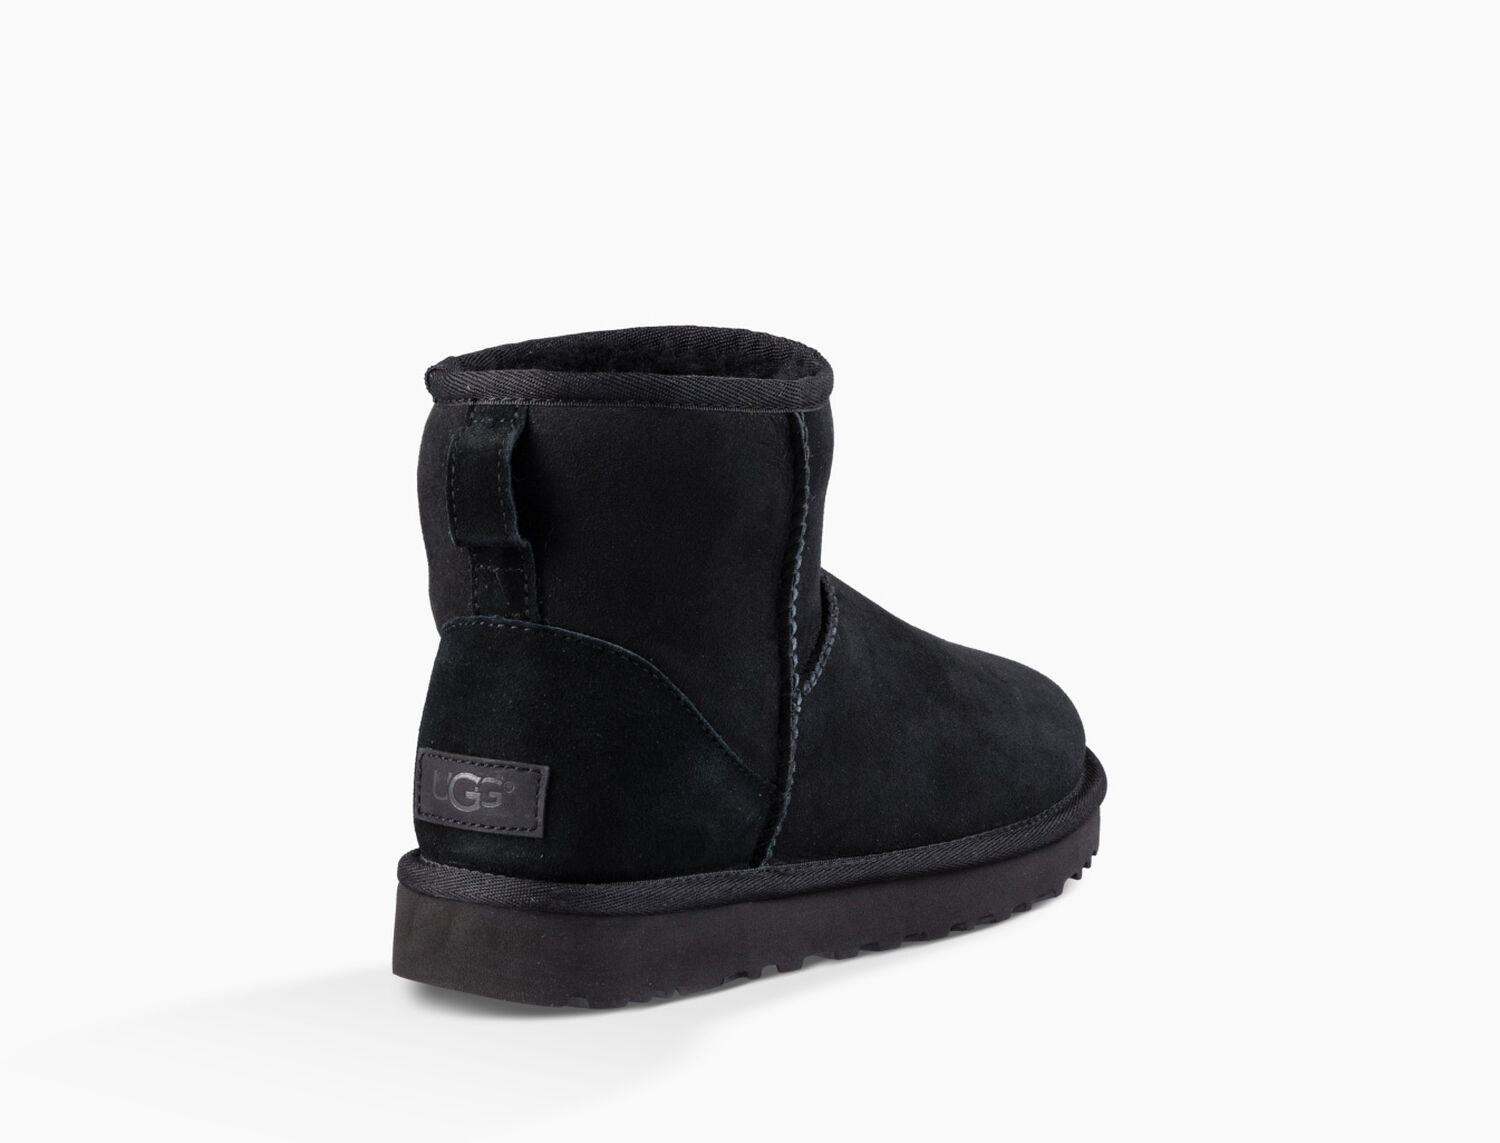 Cheap UGG Boots %- UGG Outlet Clearance Online Sale: UGG Classic - Kids Men Women Accessory Hot Sale Ugg Ugg Boots,Cheap Ugg Boots,Ugg Outlet,Ugg Outlet Online,Ugg Sale.